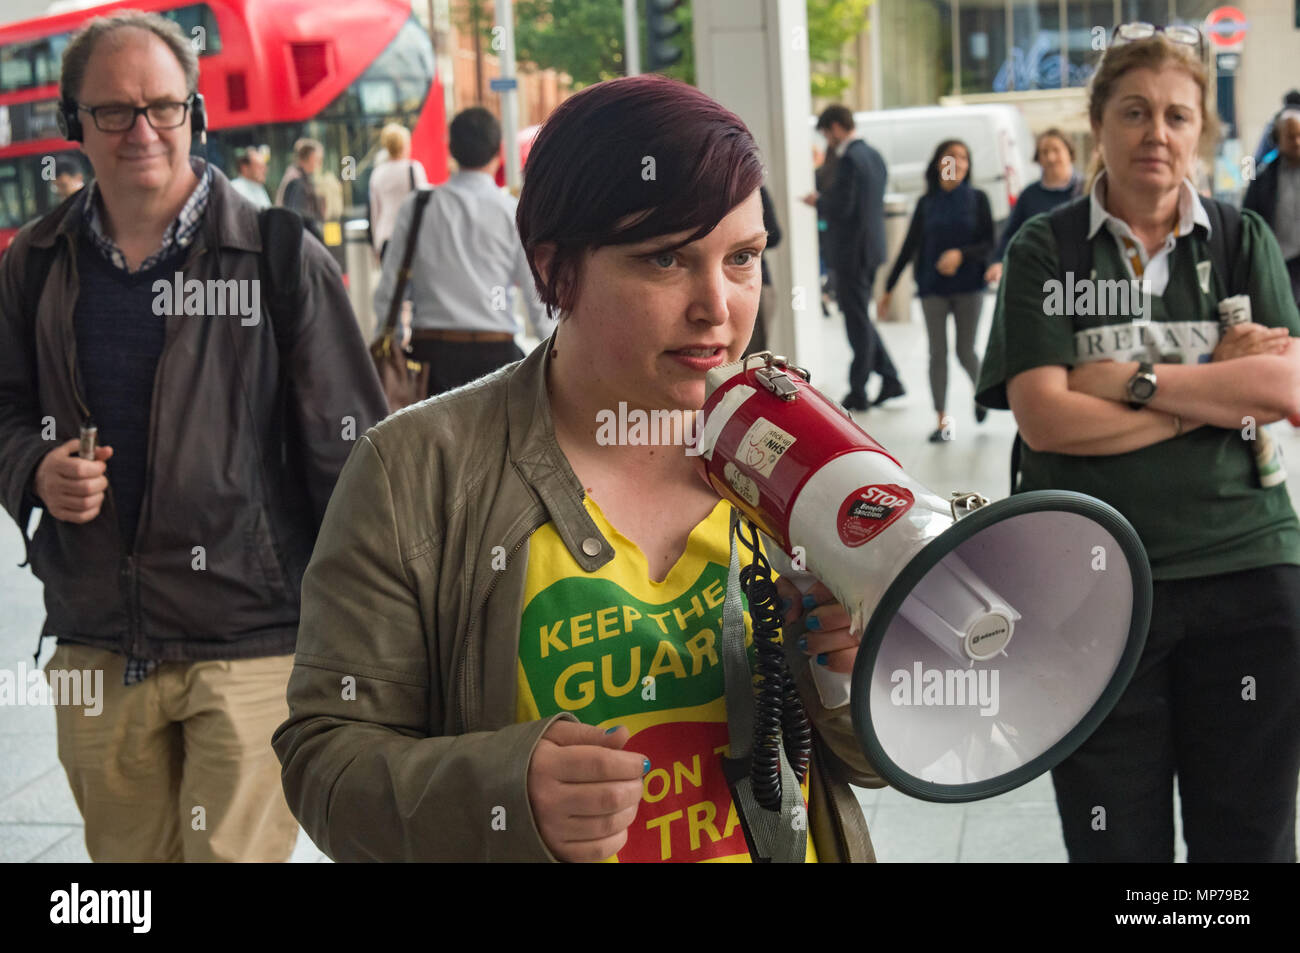 London, UK. 21st May 2018. A speaker from the RMT reiterates their determination to keep fighting GTR to keep guards on the train, insisting that they are essential for passenger safety and to allow disabled people to travel, at the 'People's Picket' by disabled rail passengers from Disabled People Against Cuts along with the Association of British Commuters and RMT members outside London Bridge station. Credit: Peter Marshall/Alamy Live News - Stock Image